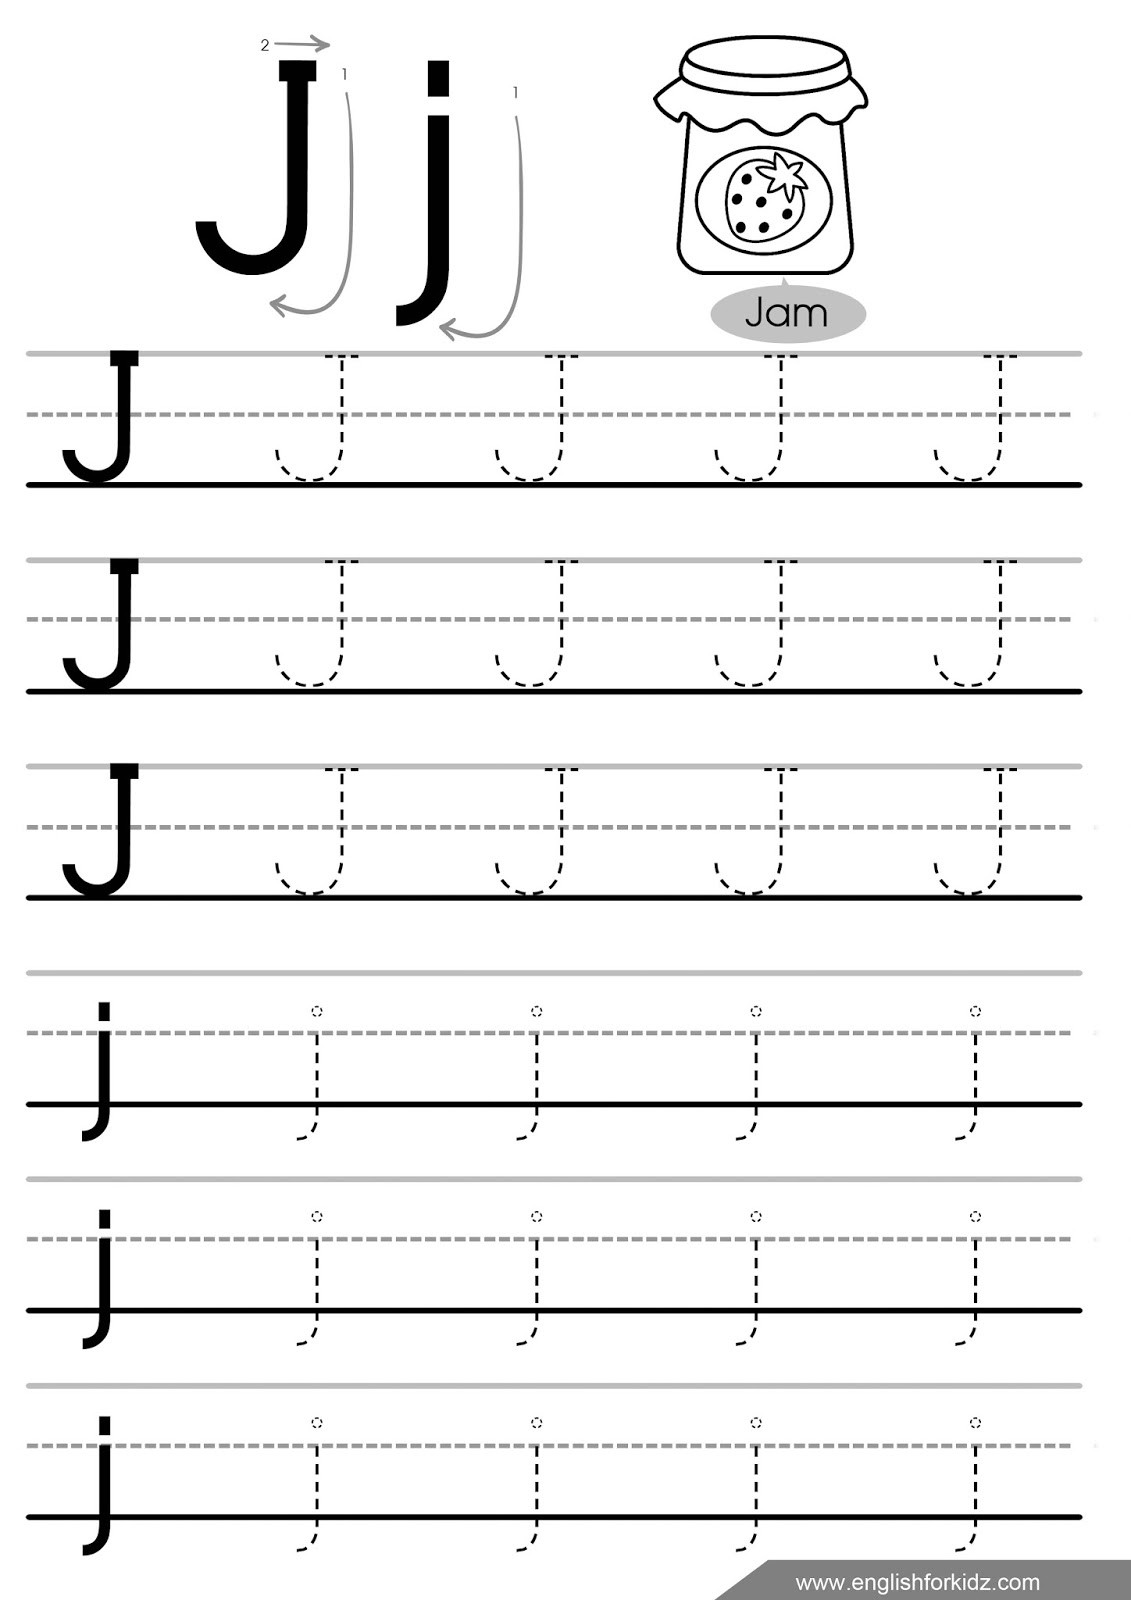 30 Lower Case Letter Tracing Worksheets